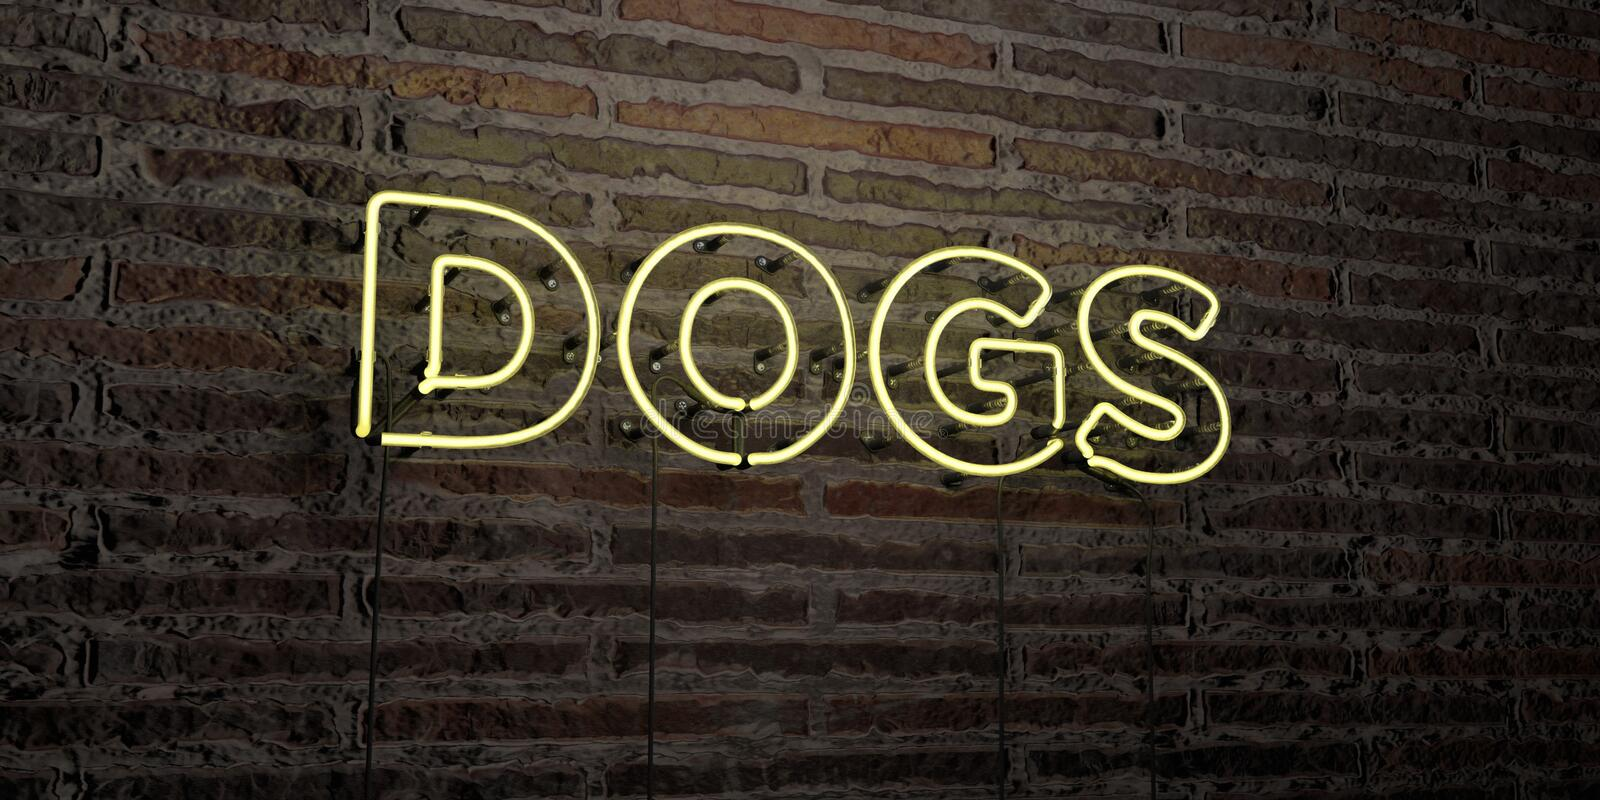 DOGS -Realistic Neon Sign on Brick Wall background - 3D rendered royalty free stock image. Can be used for online banner ads and direct mailers vector illustration